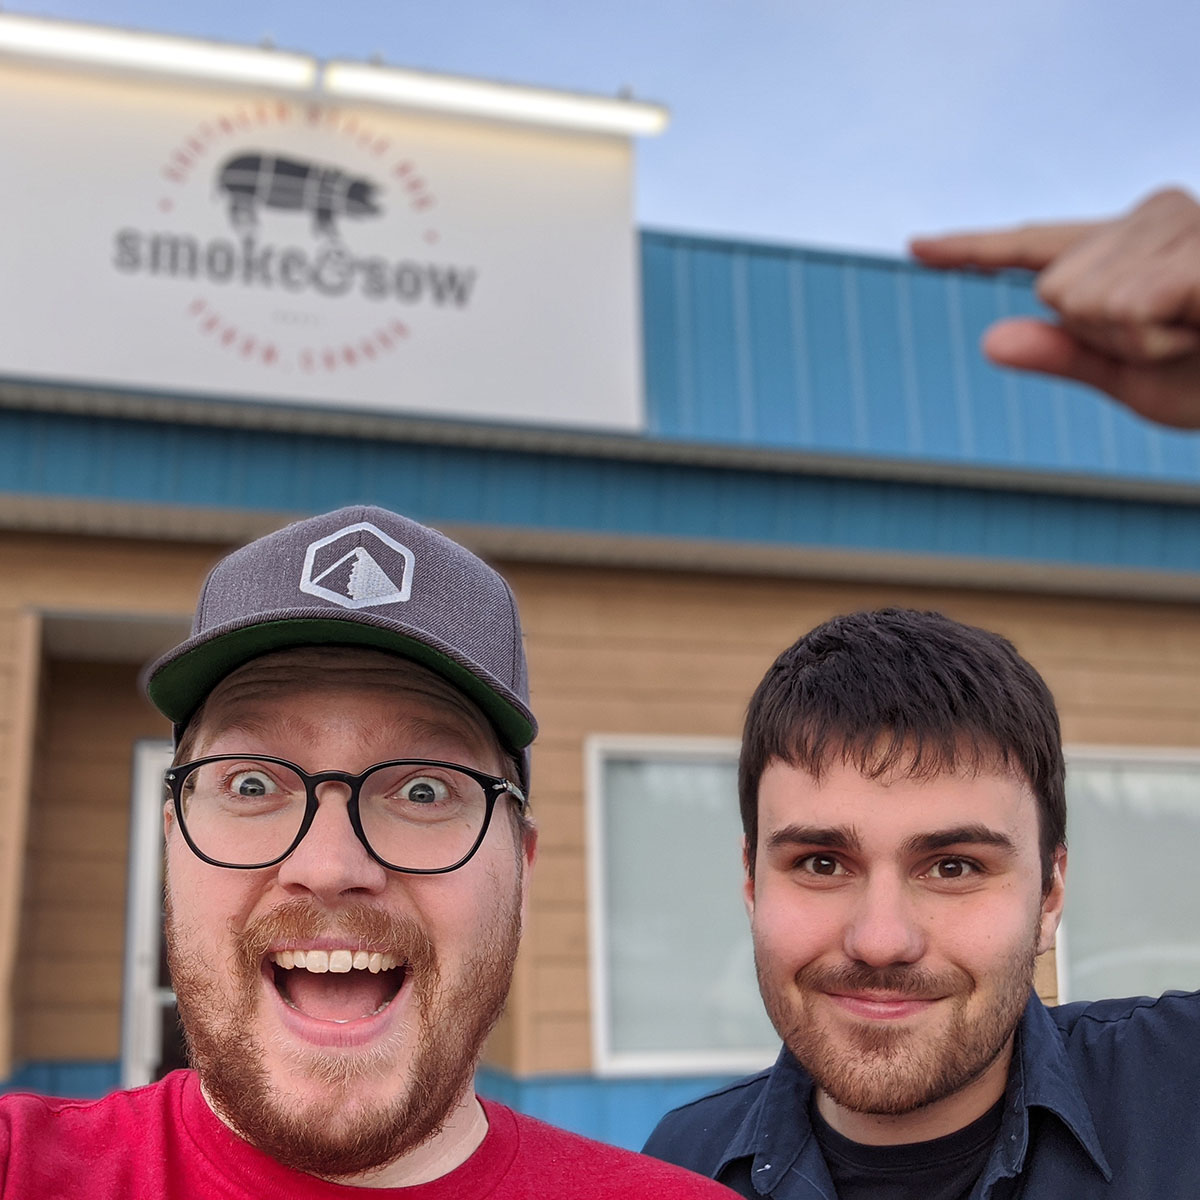 ray magnuson and steve from smoke & sow